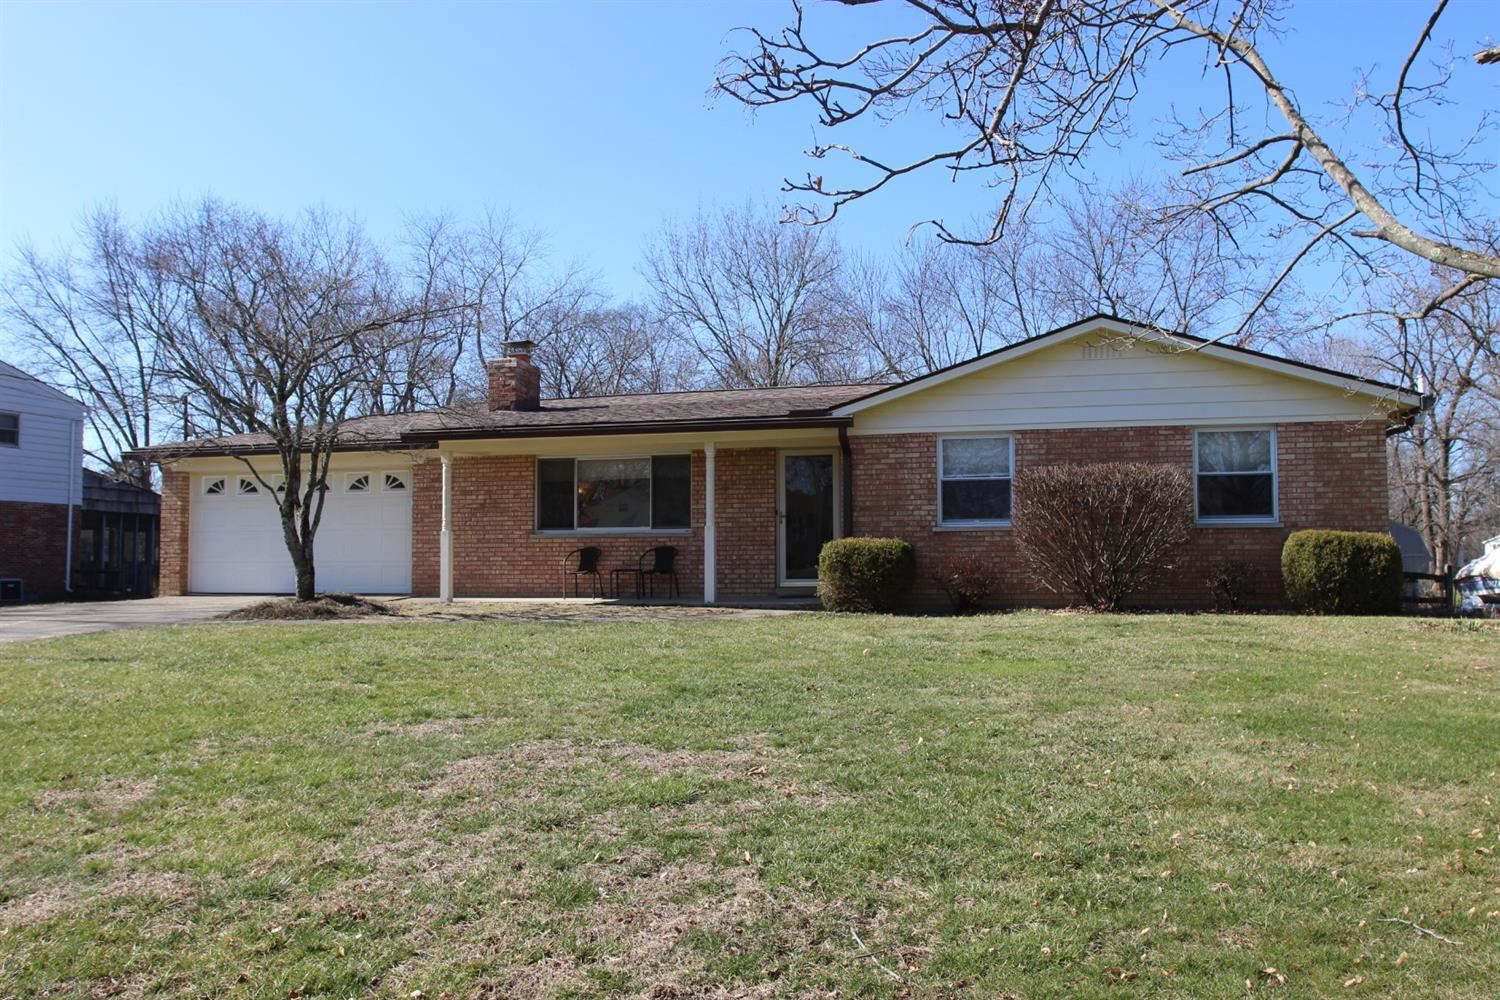 8567 Goldfinch Way, West Chester, OH 45069 - #: 1652607